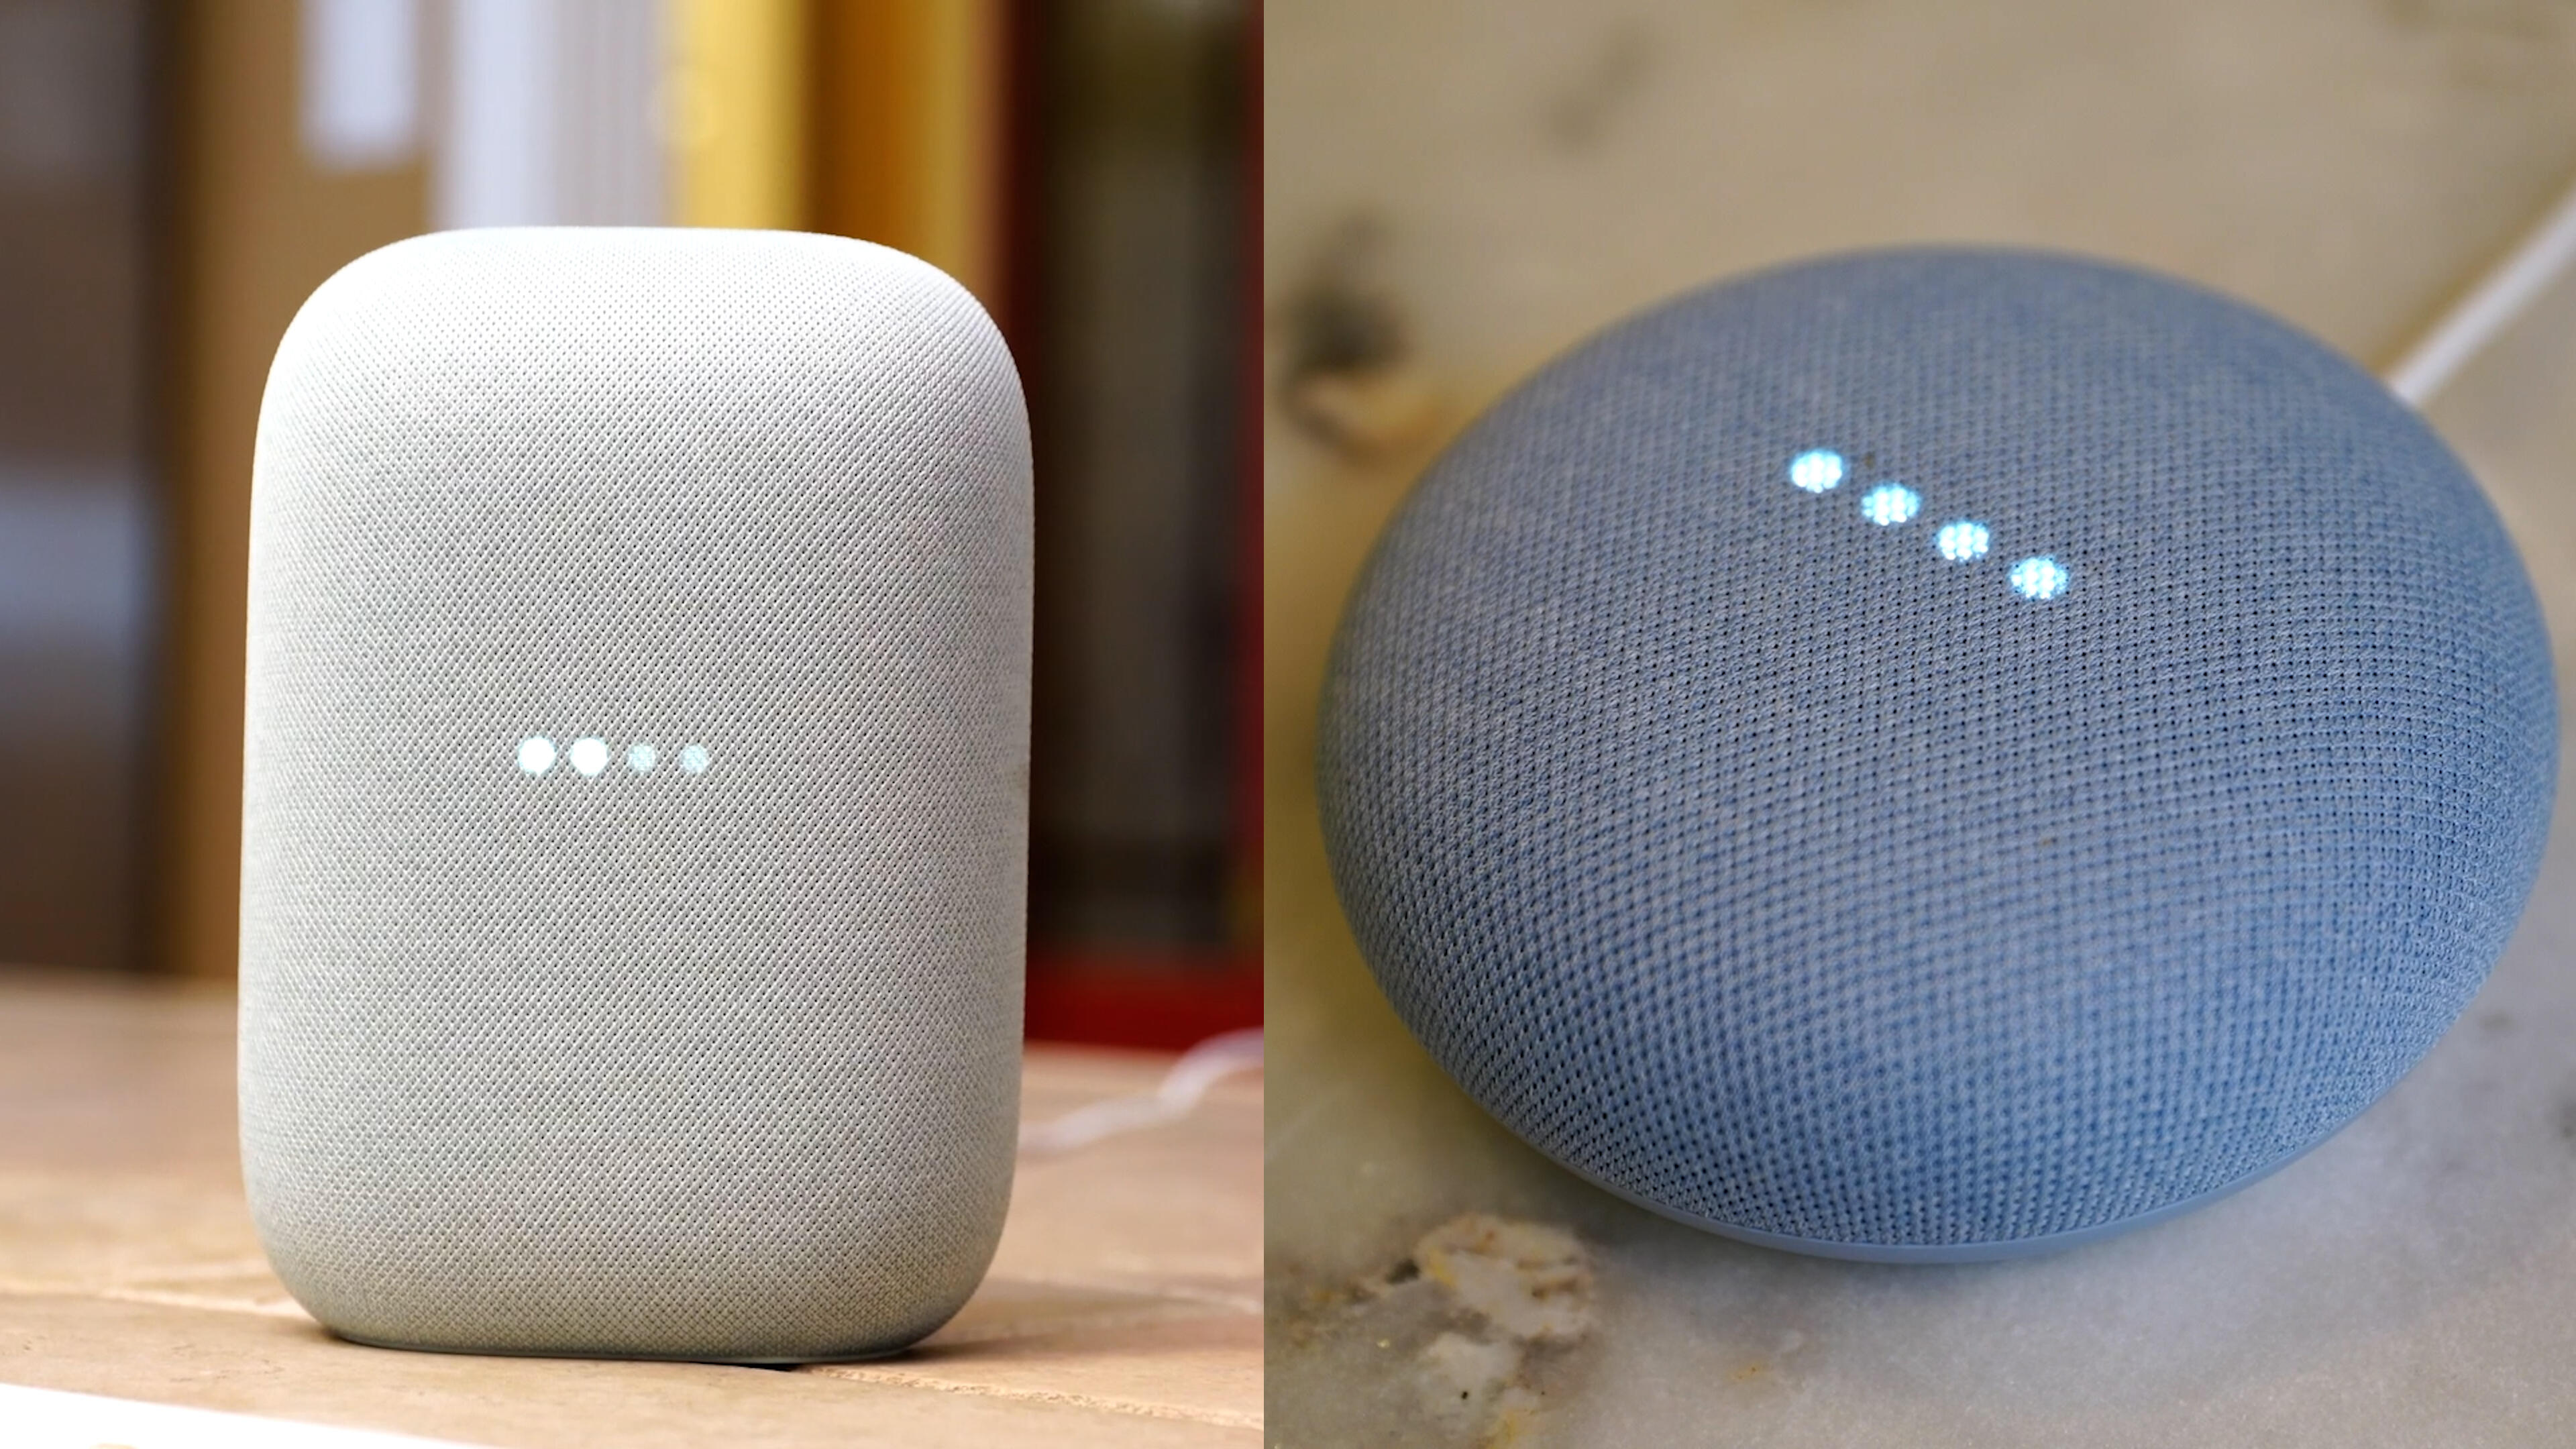 Video: Nest Audio vs. Nest Mini: Which Google smart speaker makes a better starting point?